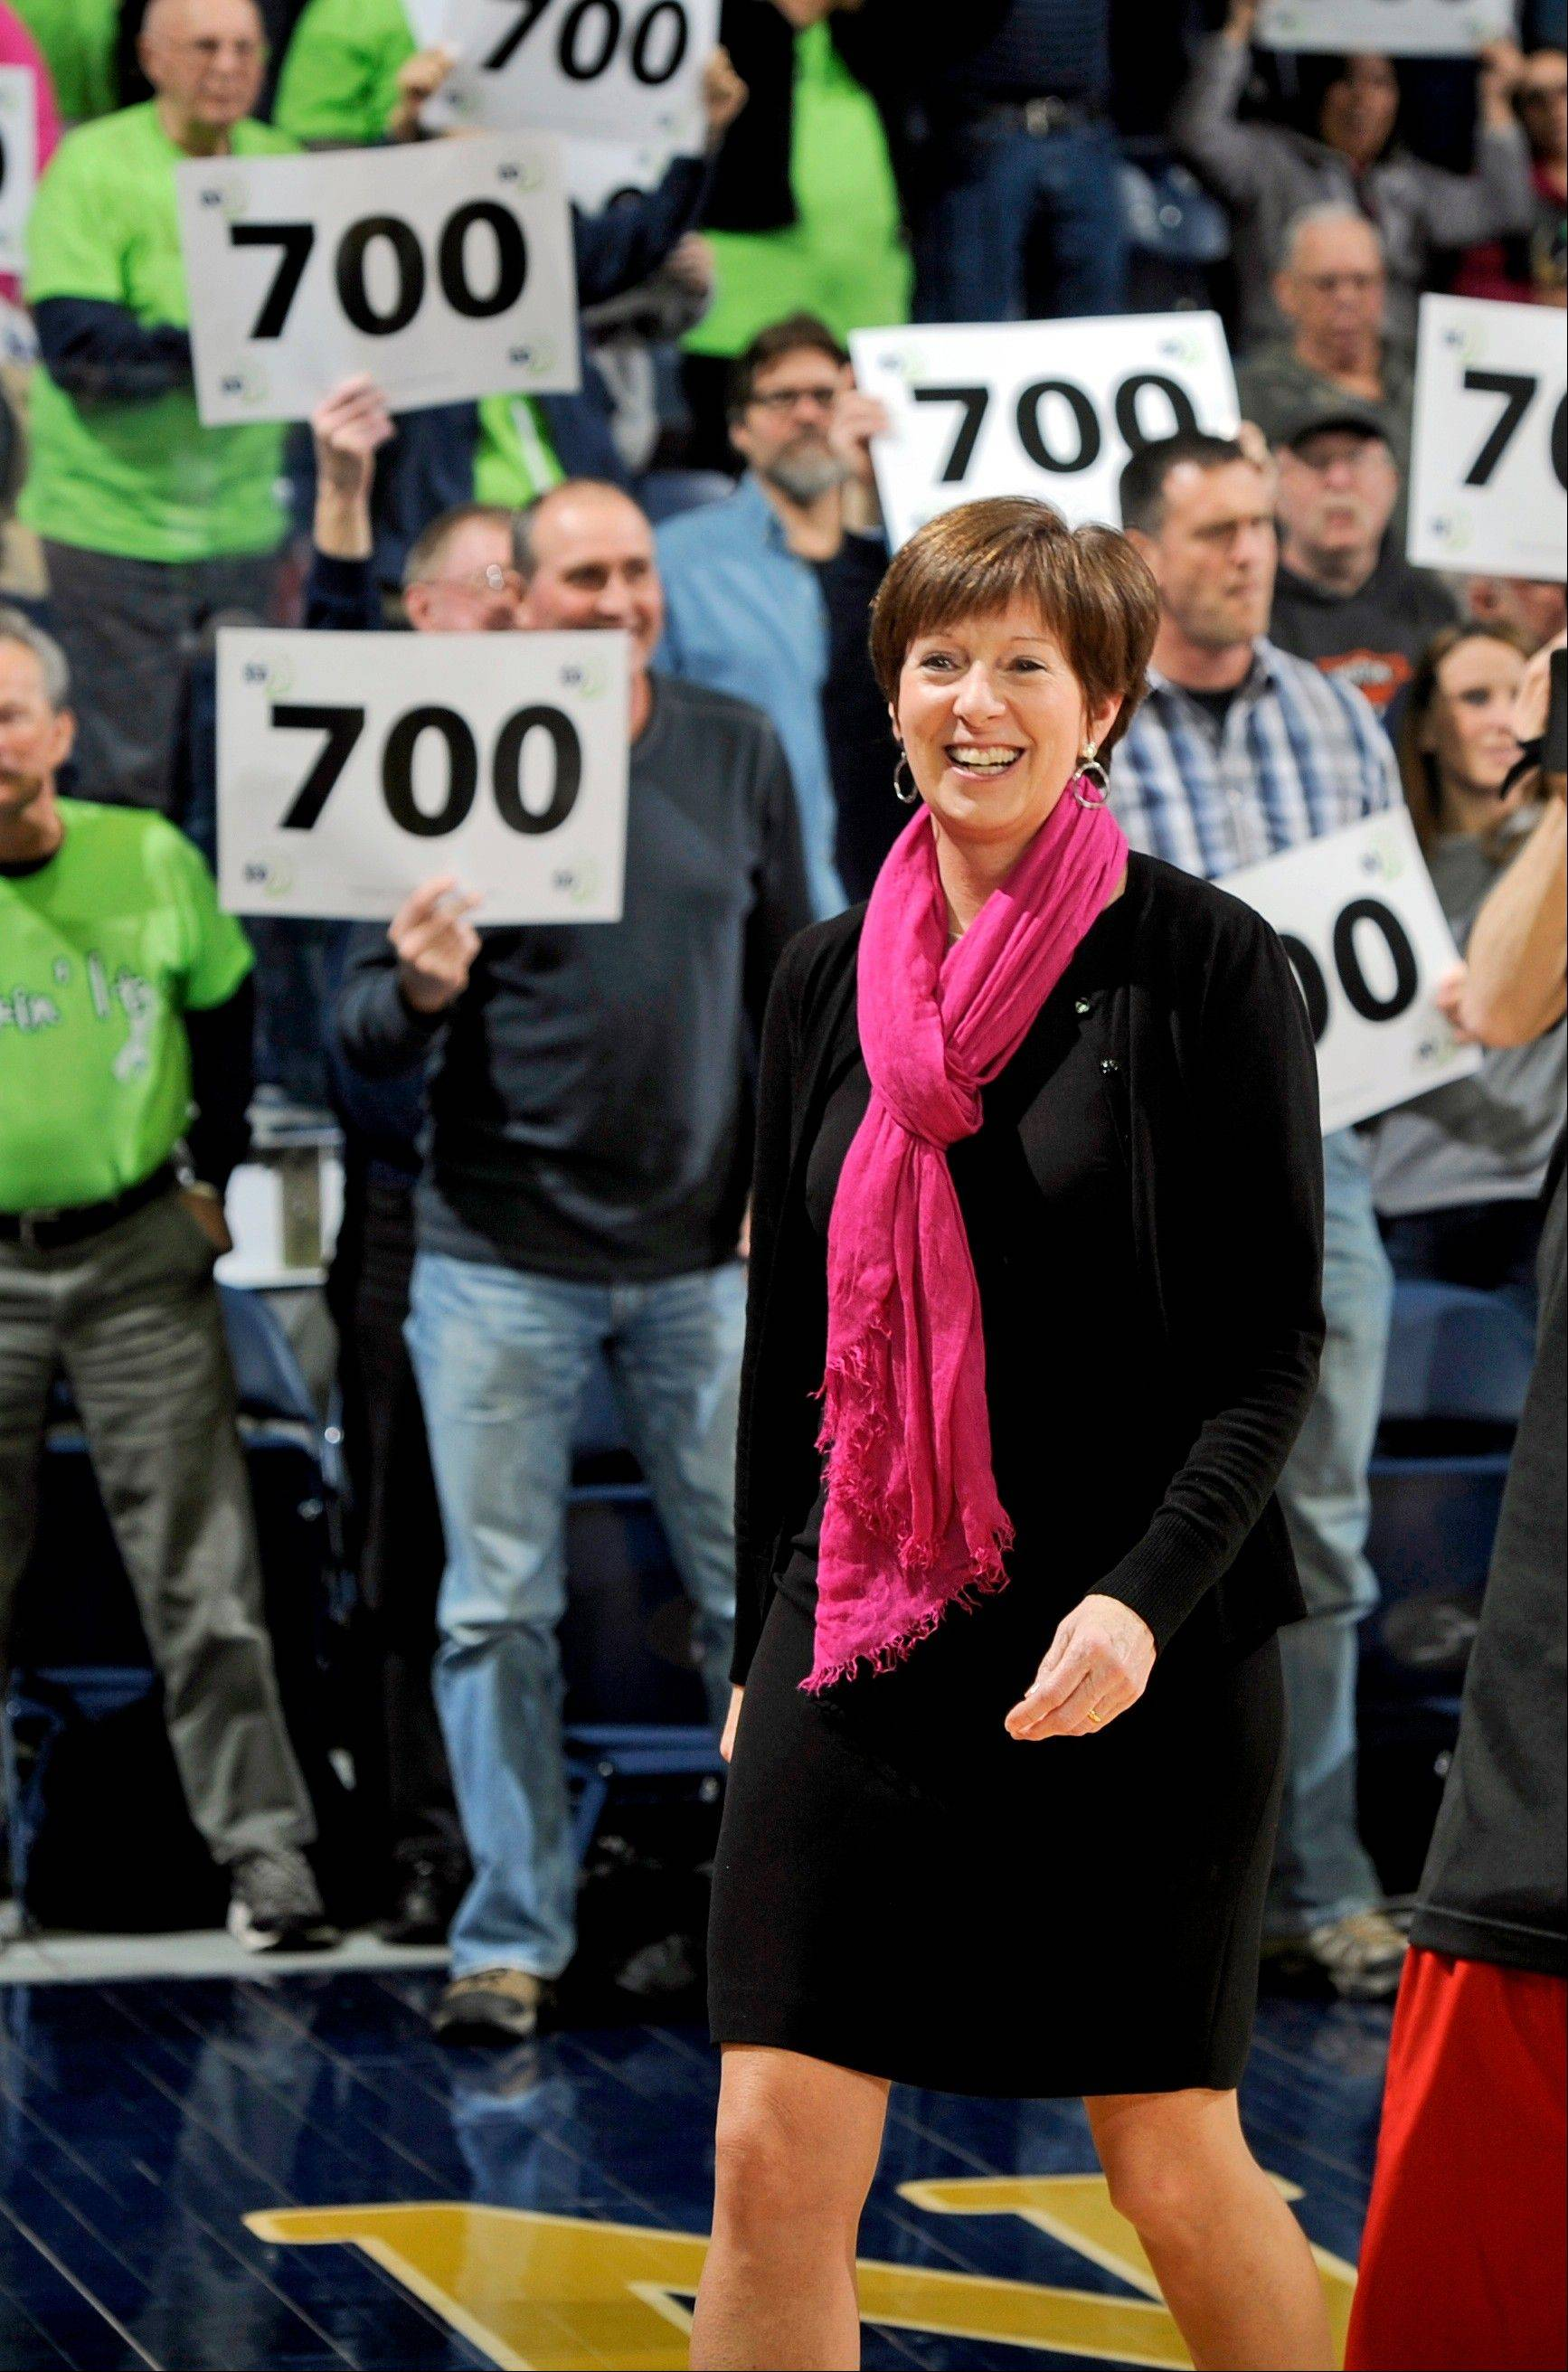 FILE - In this Feb. 11, 2013, file photo, Notre Dame head coach Muffet McGraw reacts to the crowd holding up signs with 700 on them in honor of her 700th career coaching before an NCAA college basketball game against Louisville in South Bend, Ind. McGraw was selected as The Associated Press' women's basketball coach of the year on Saturday, April 6, 2013.